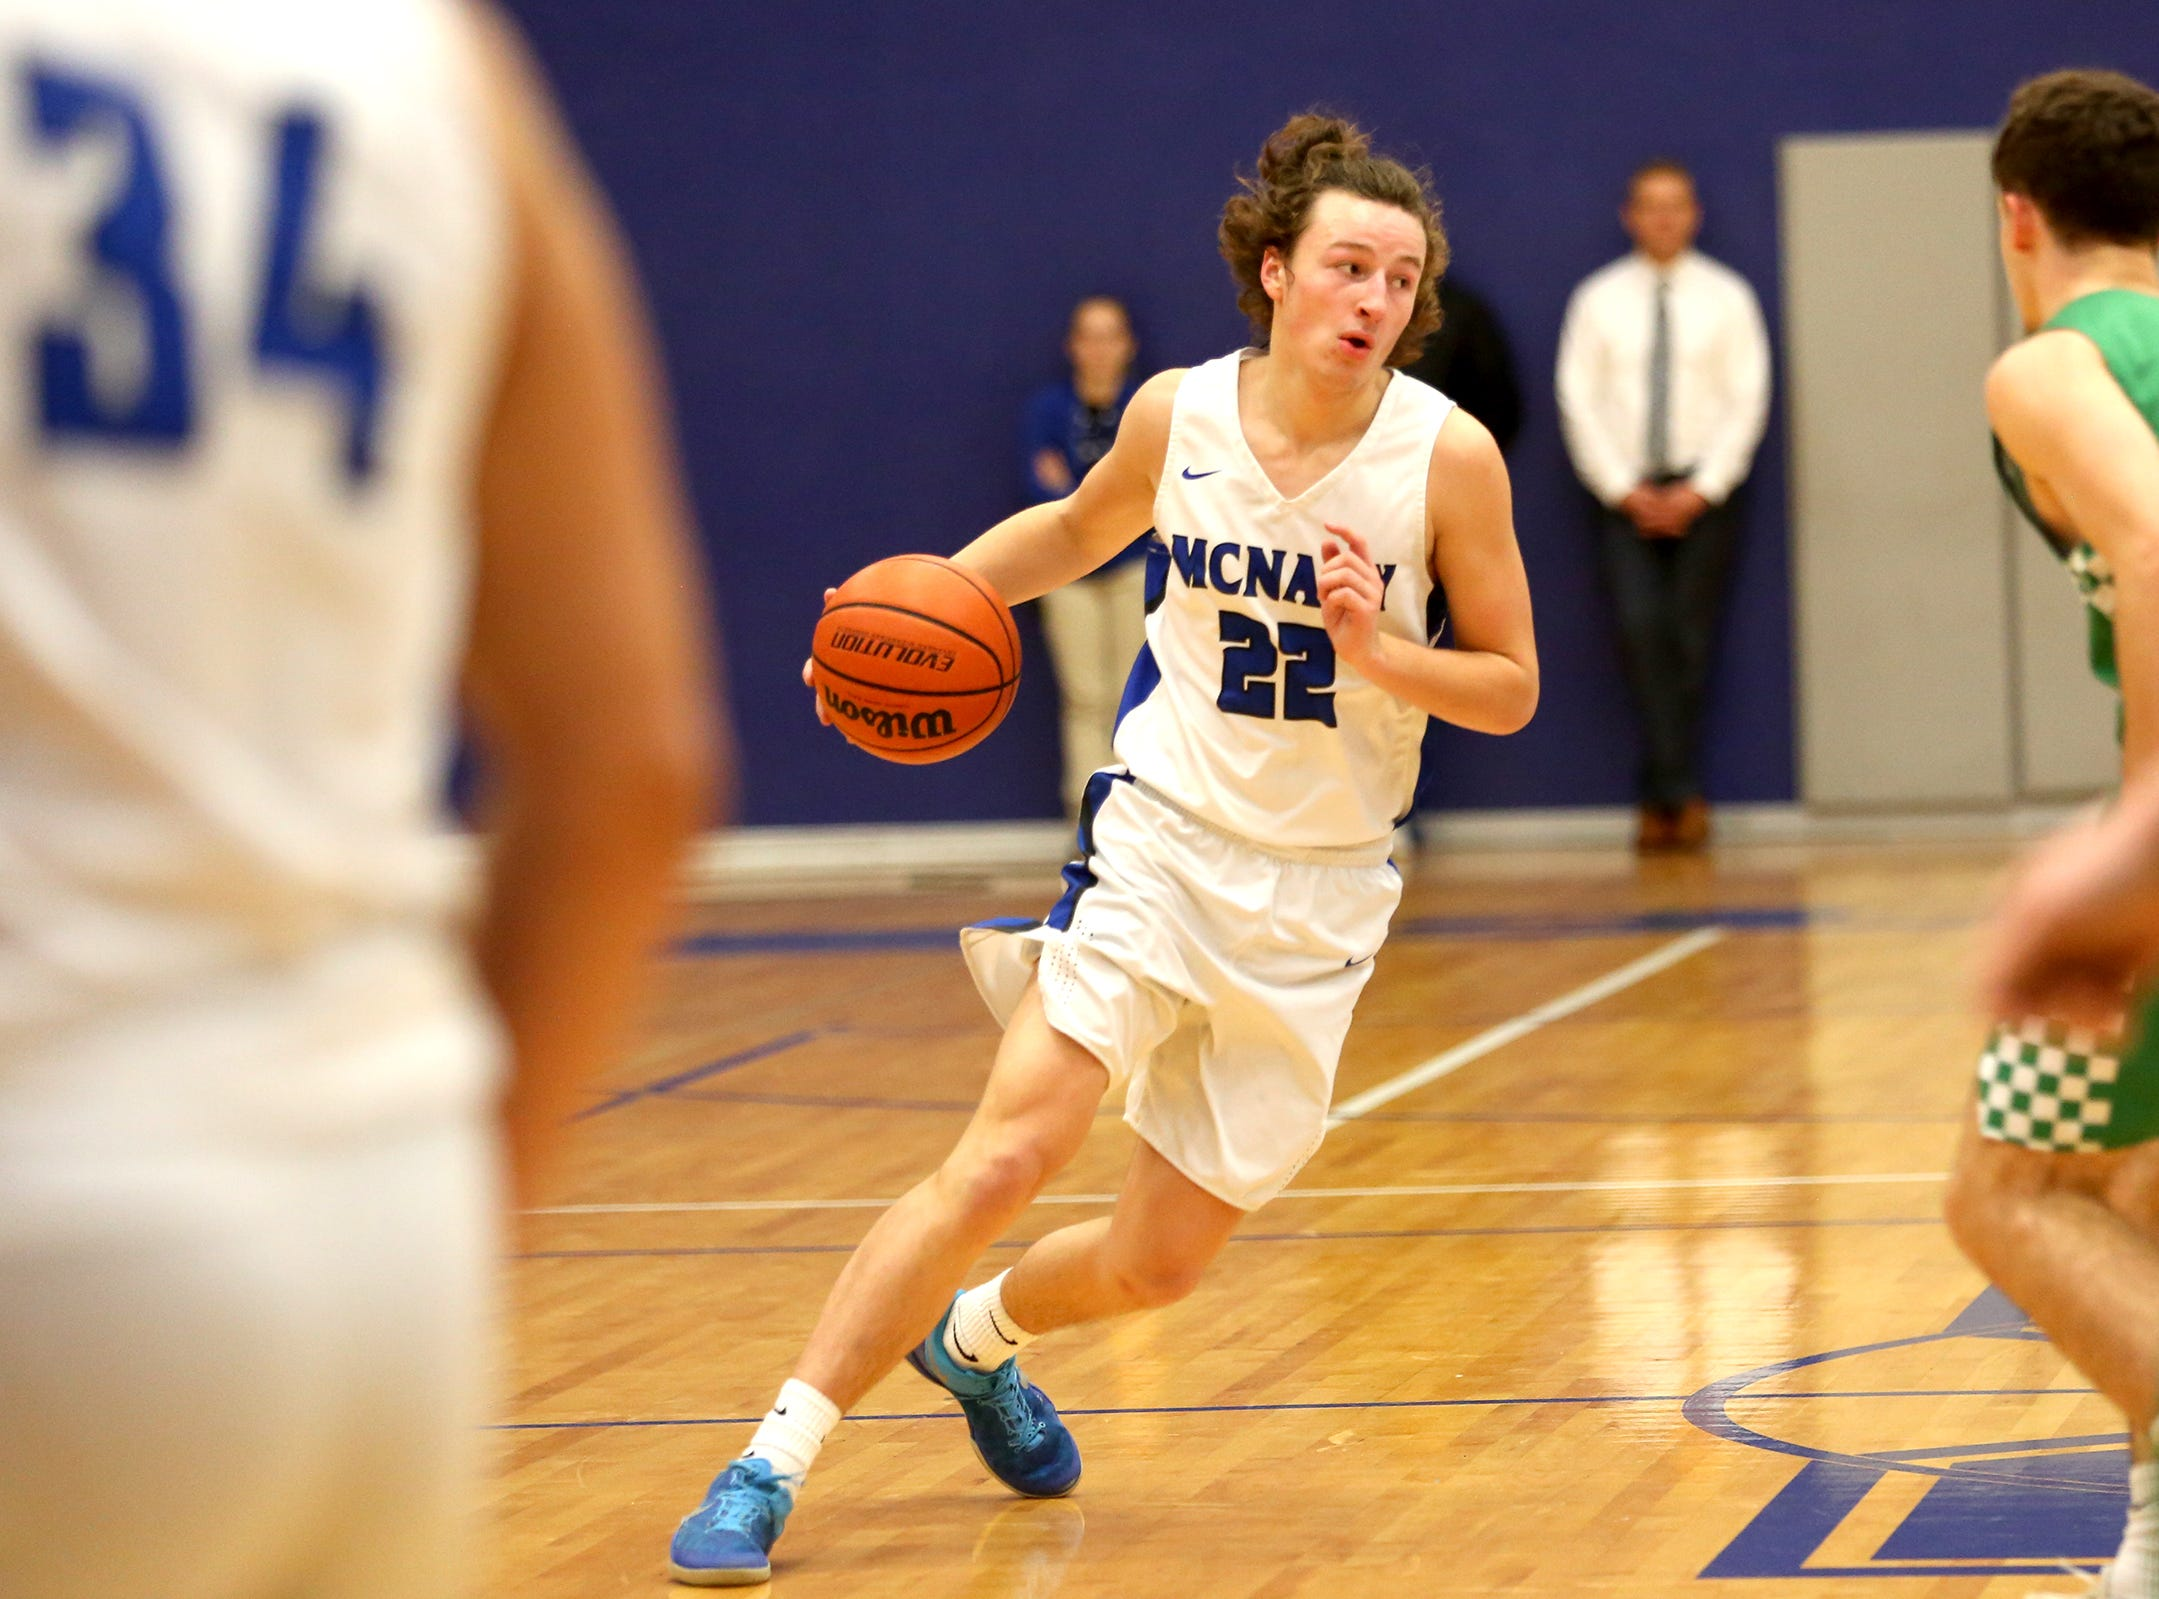 McNary's Griffin Oliveira (22) during the McNary boys basketball vs. West Salem game at McNary High School in Keizer on Wednesday, Feb. 6, 2019.